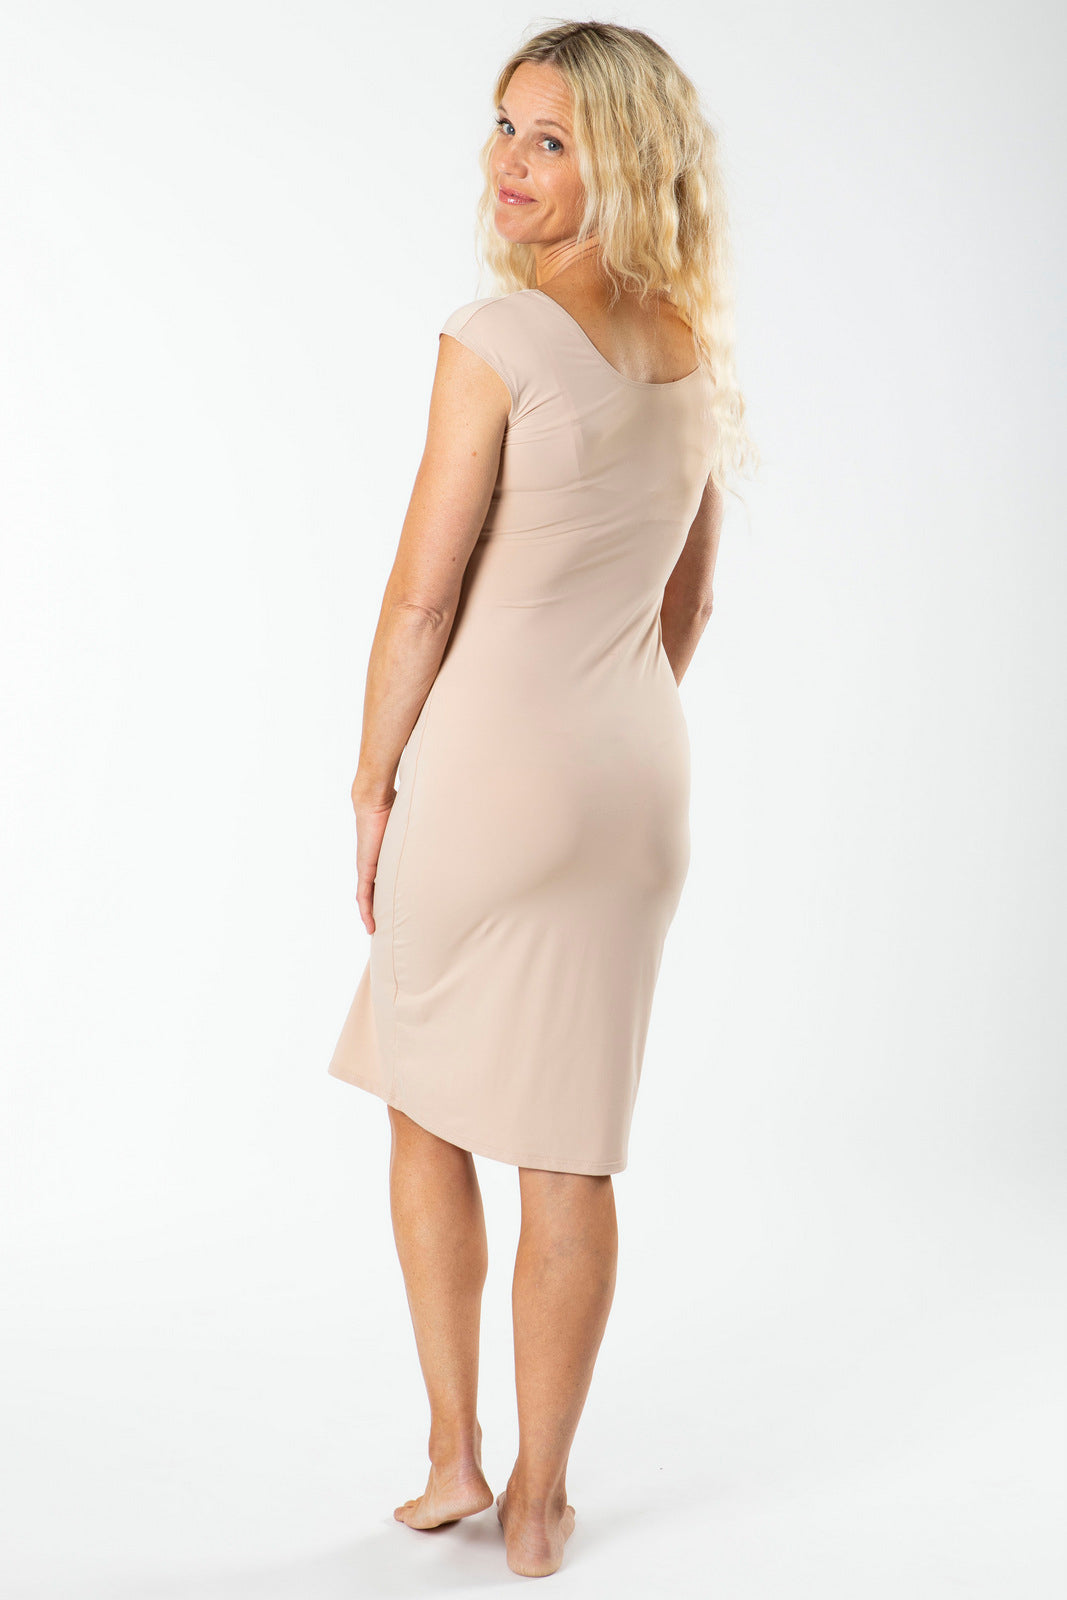 Honey Slip NUDE - Find Your Size 2 Pack